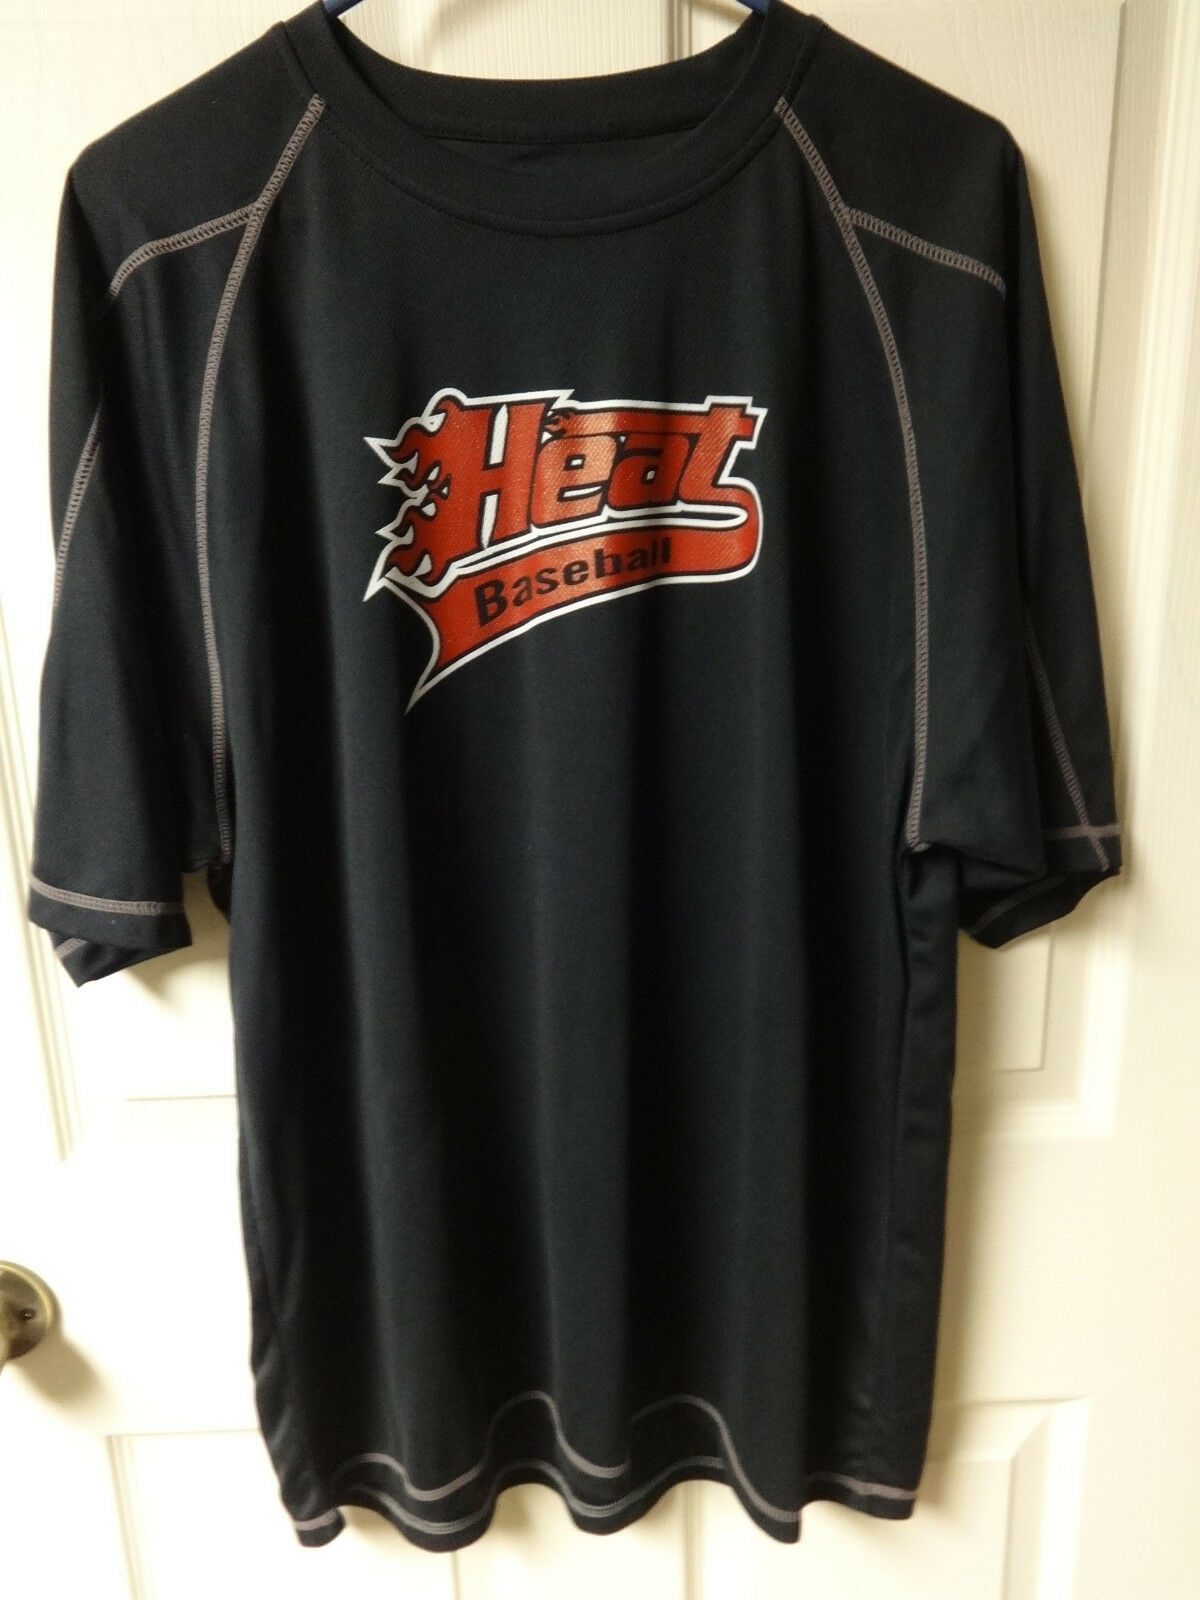 Primary image for Vintage Heat # 20 Baseball Req League Jersey Men XL by Champion Double Dry